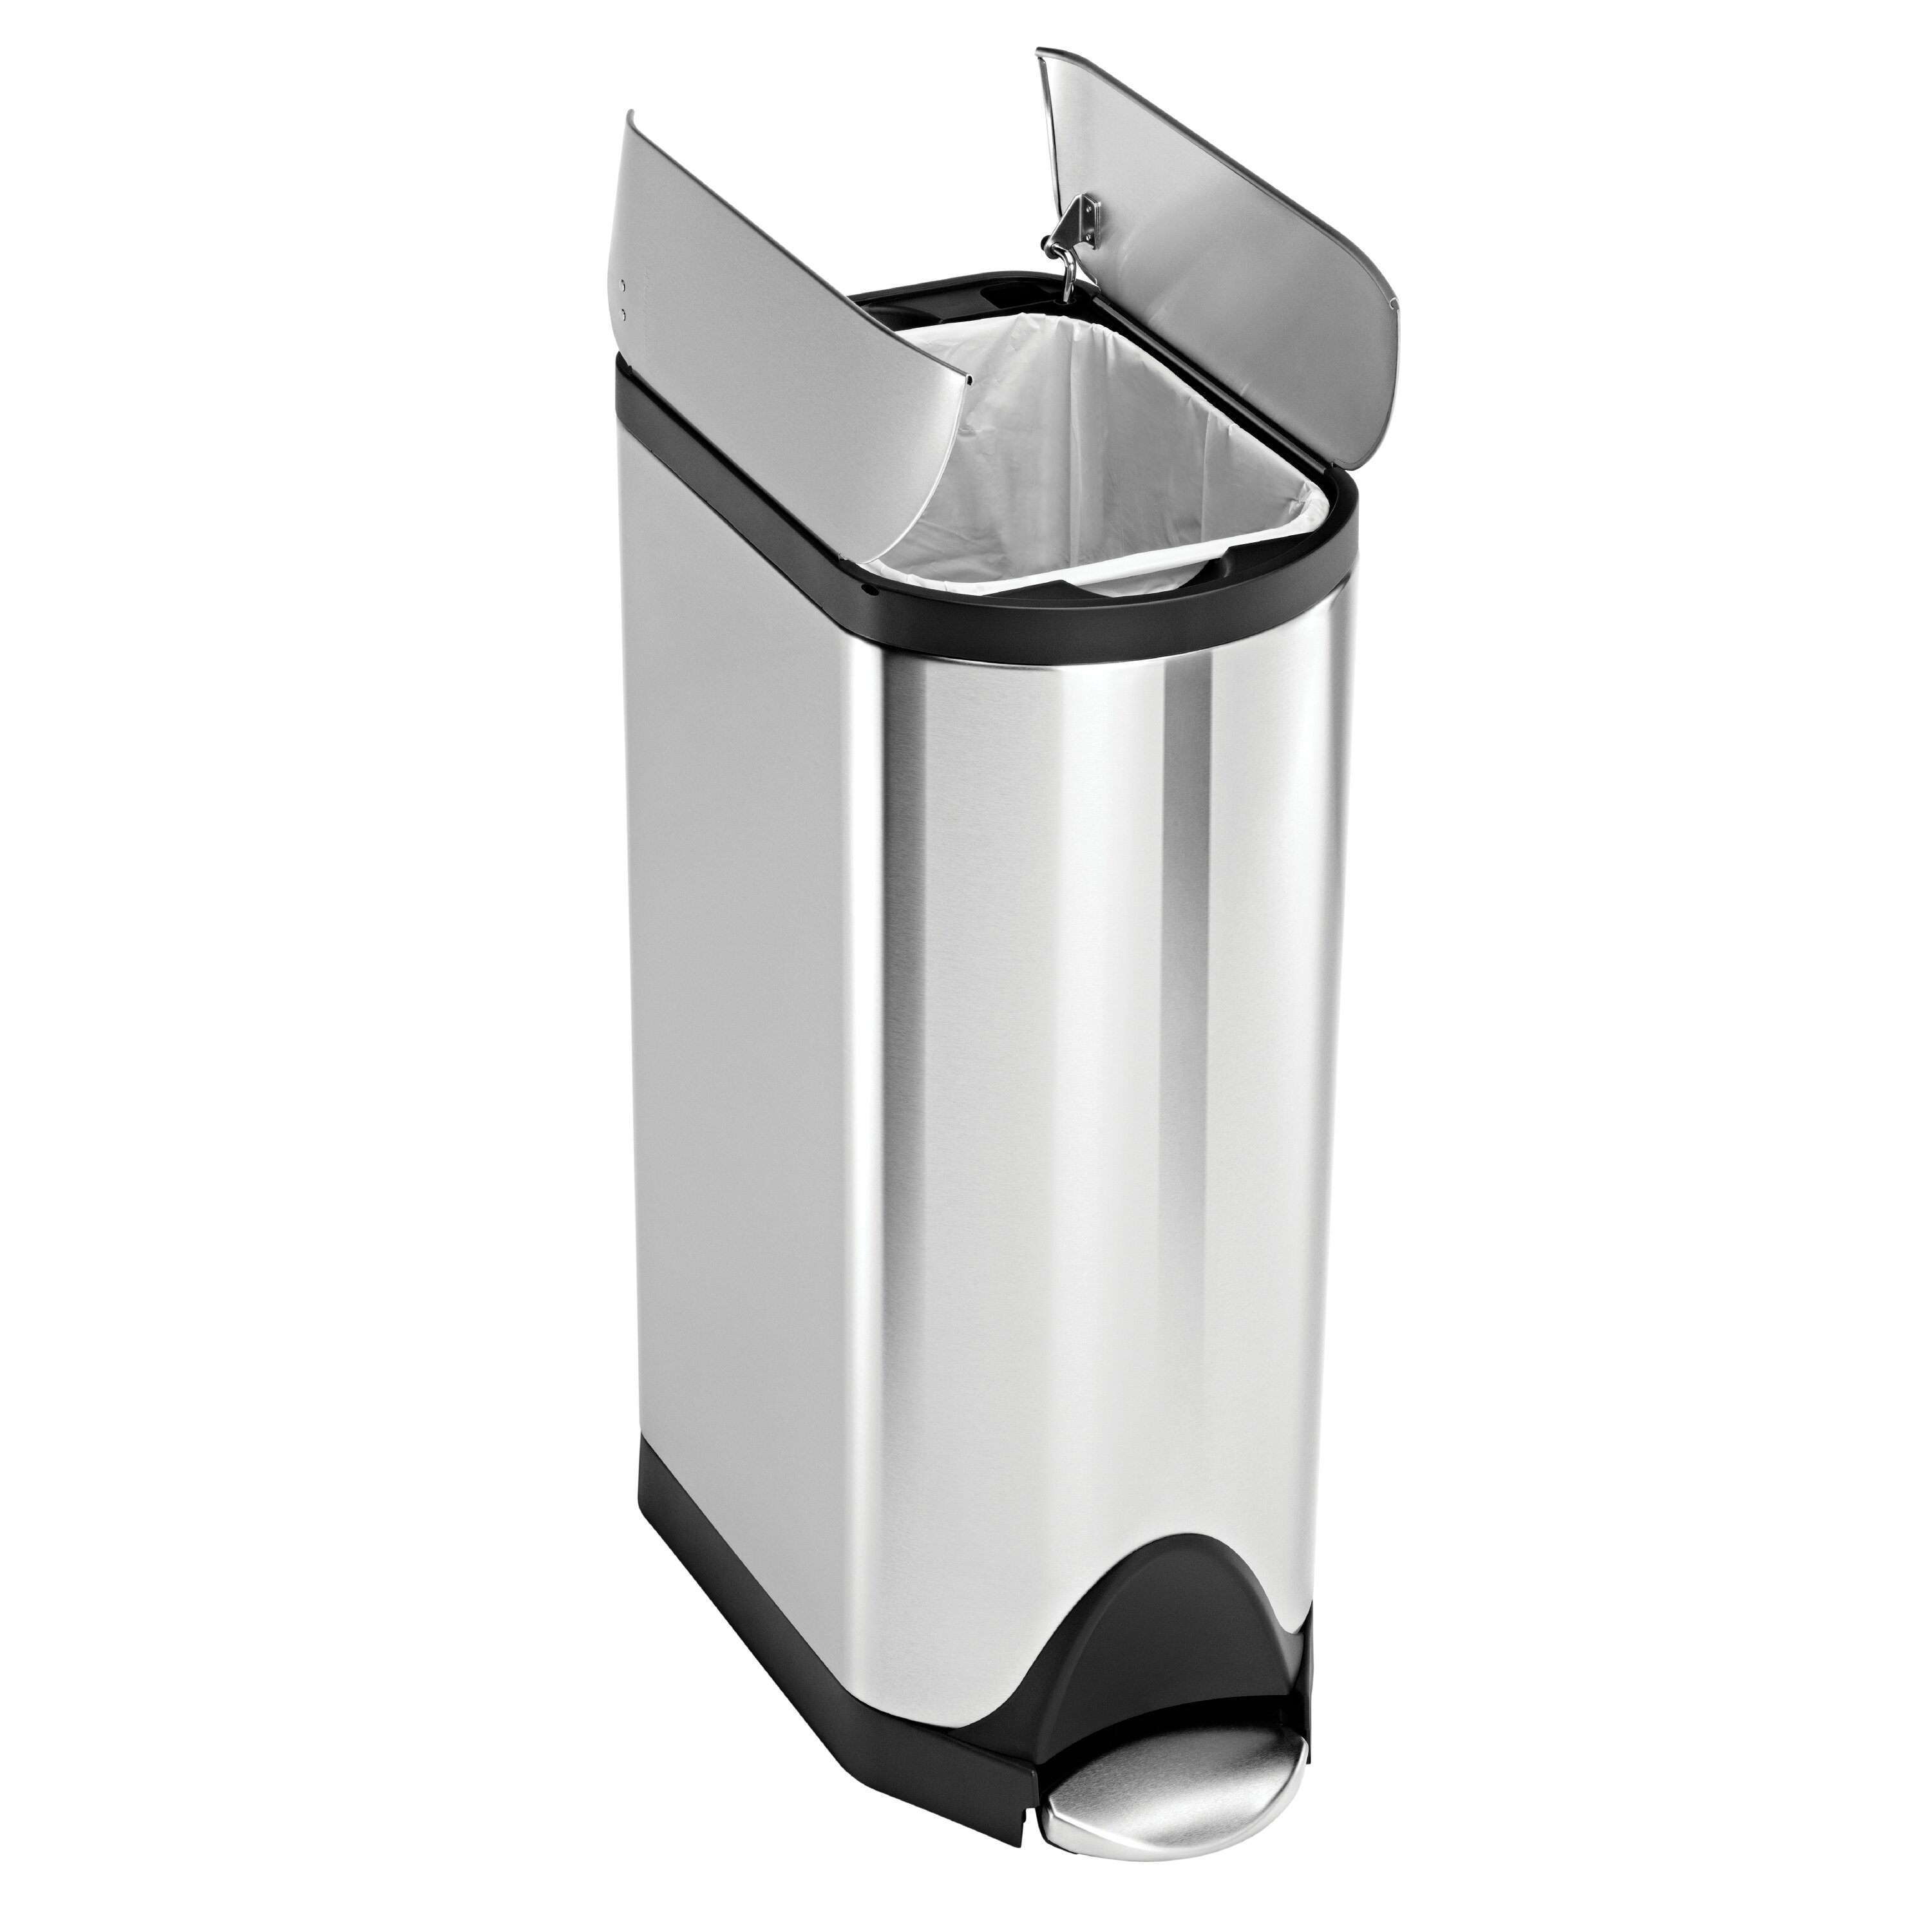 Simplehuman 30l butterfly step trash can reviews wayfair for Simplehuman trash can